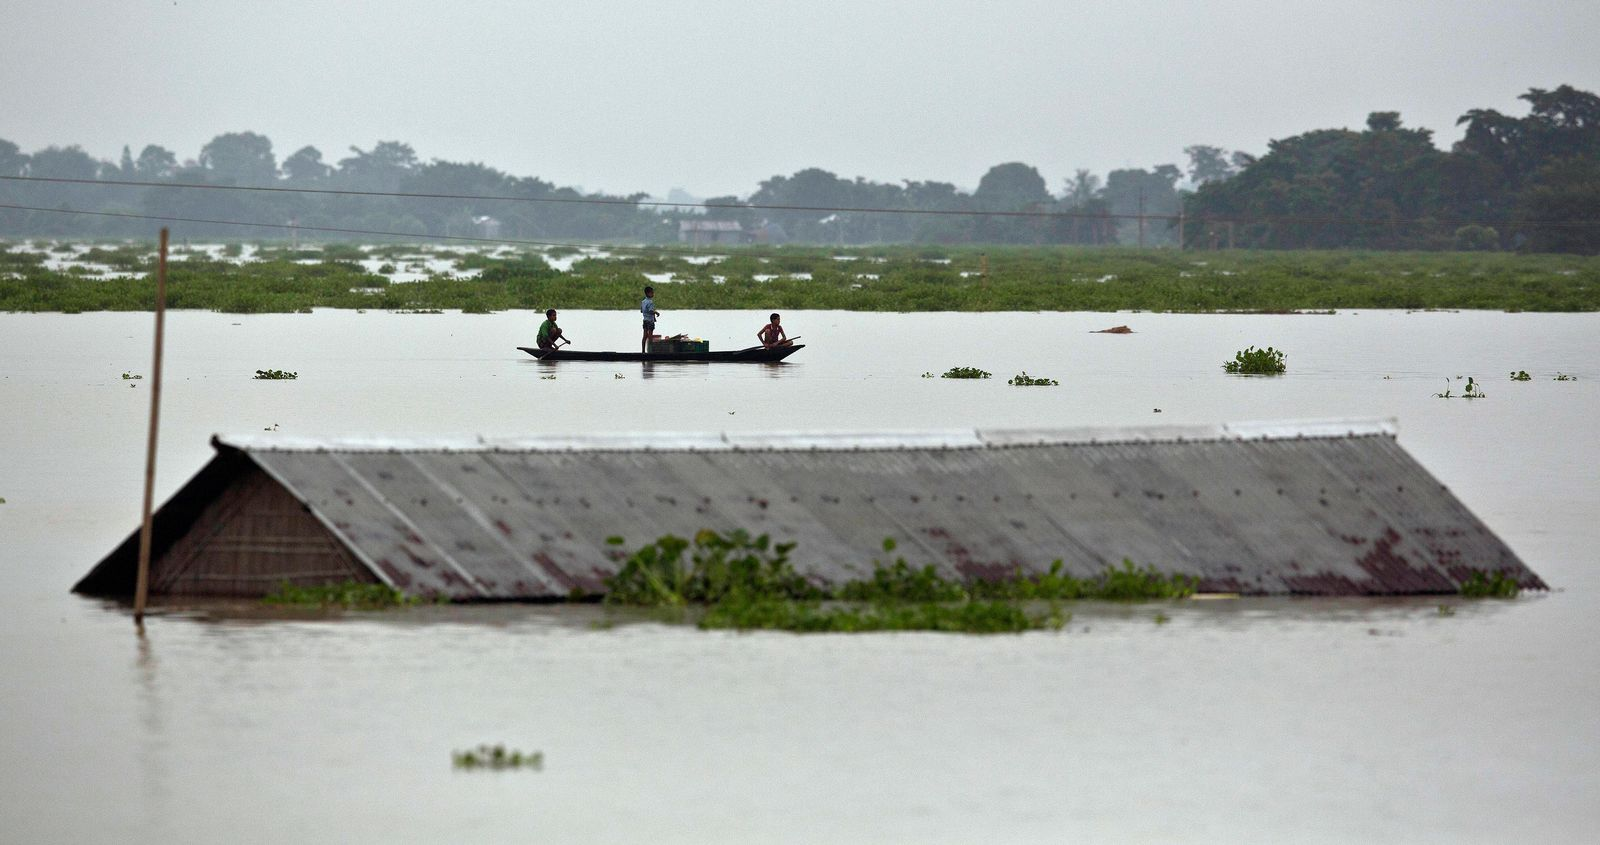 Flood affected villagers row near a submerged house in the flood water in Burha Burhi village east of Gauhati India, Monday, July 15, 2019. (AP Photo/Anupam Nath)